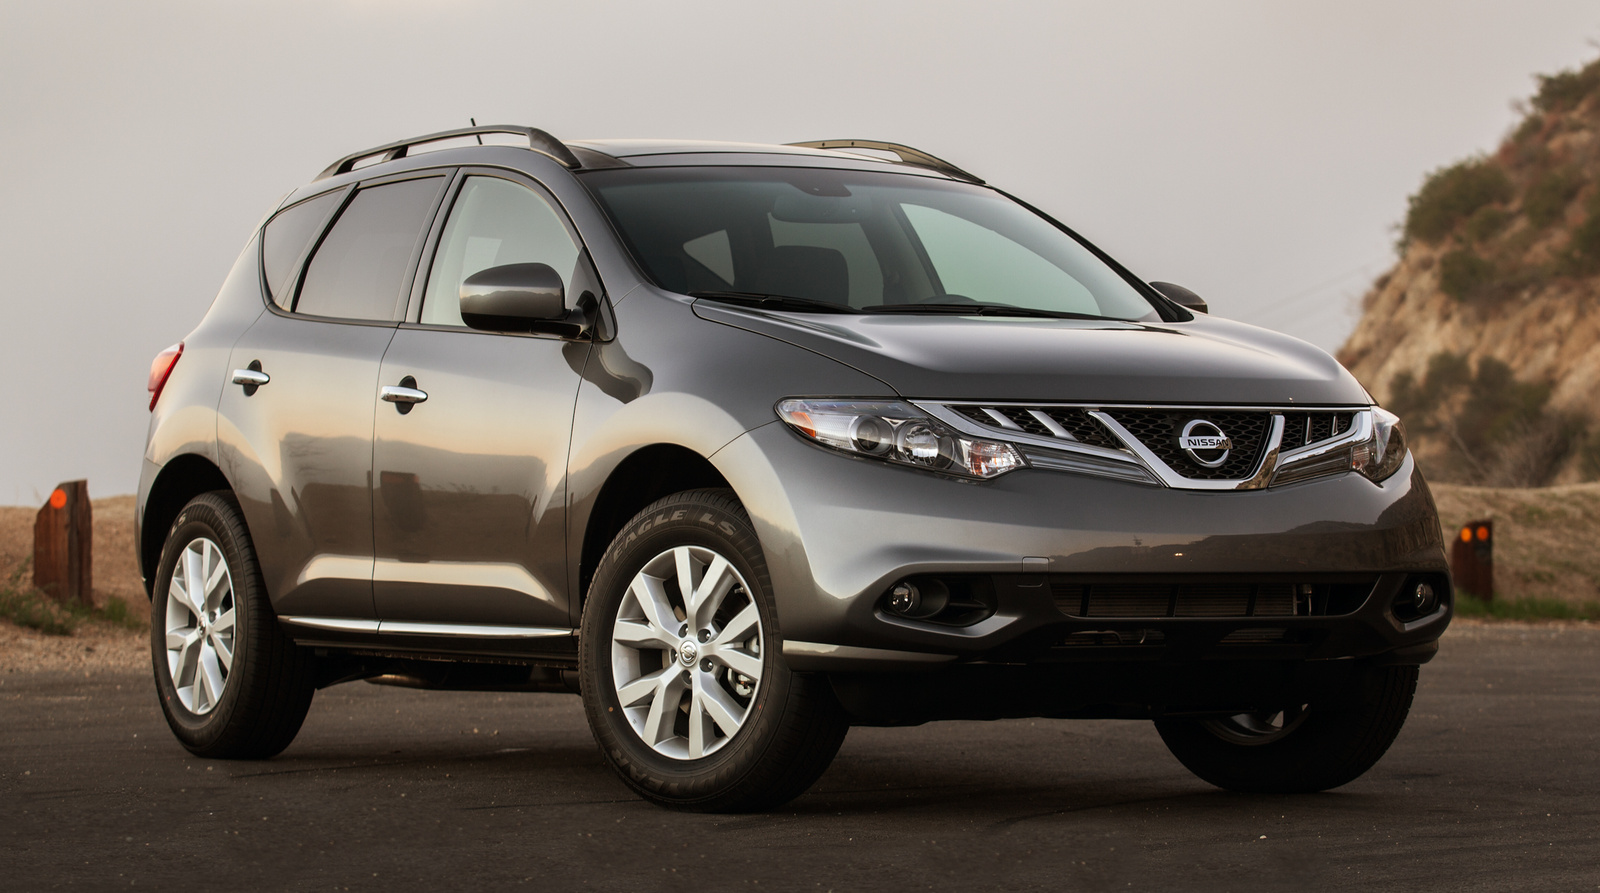 2014 nissan murano review cargurus. Black Bedroom Furniture Sets. Home Design Ideas